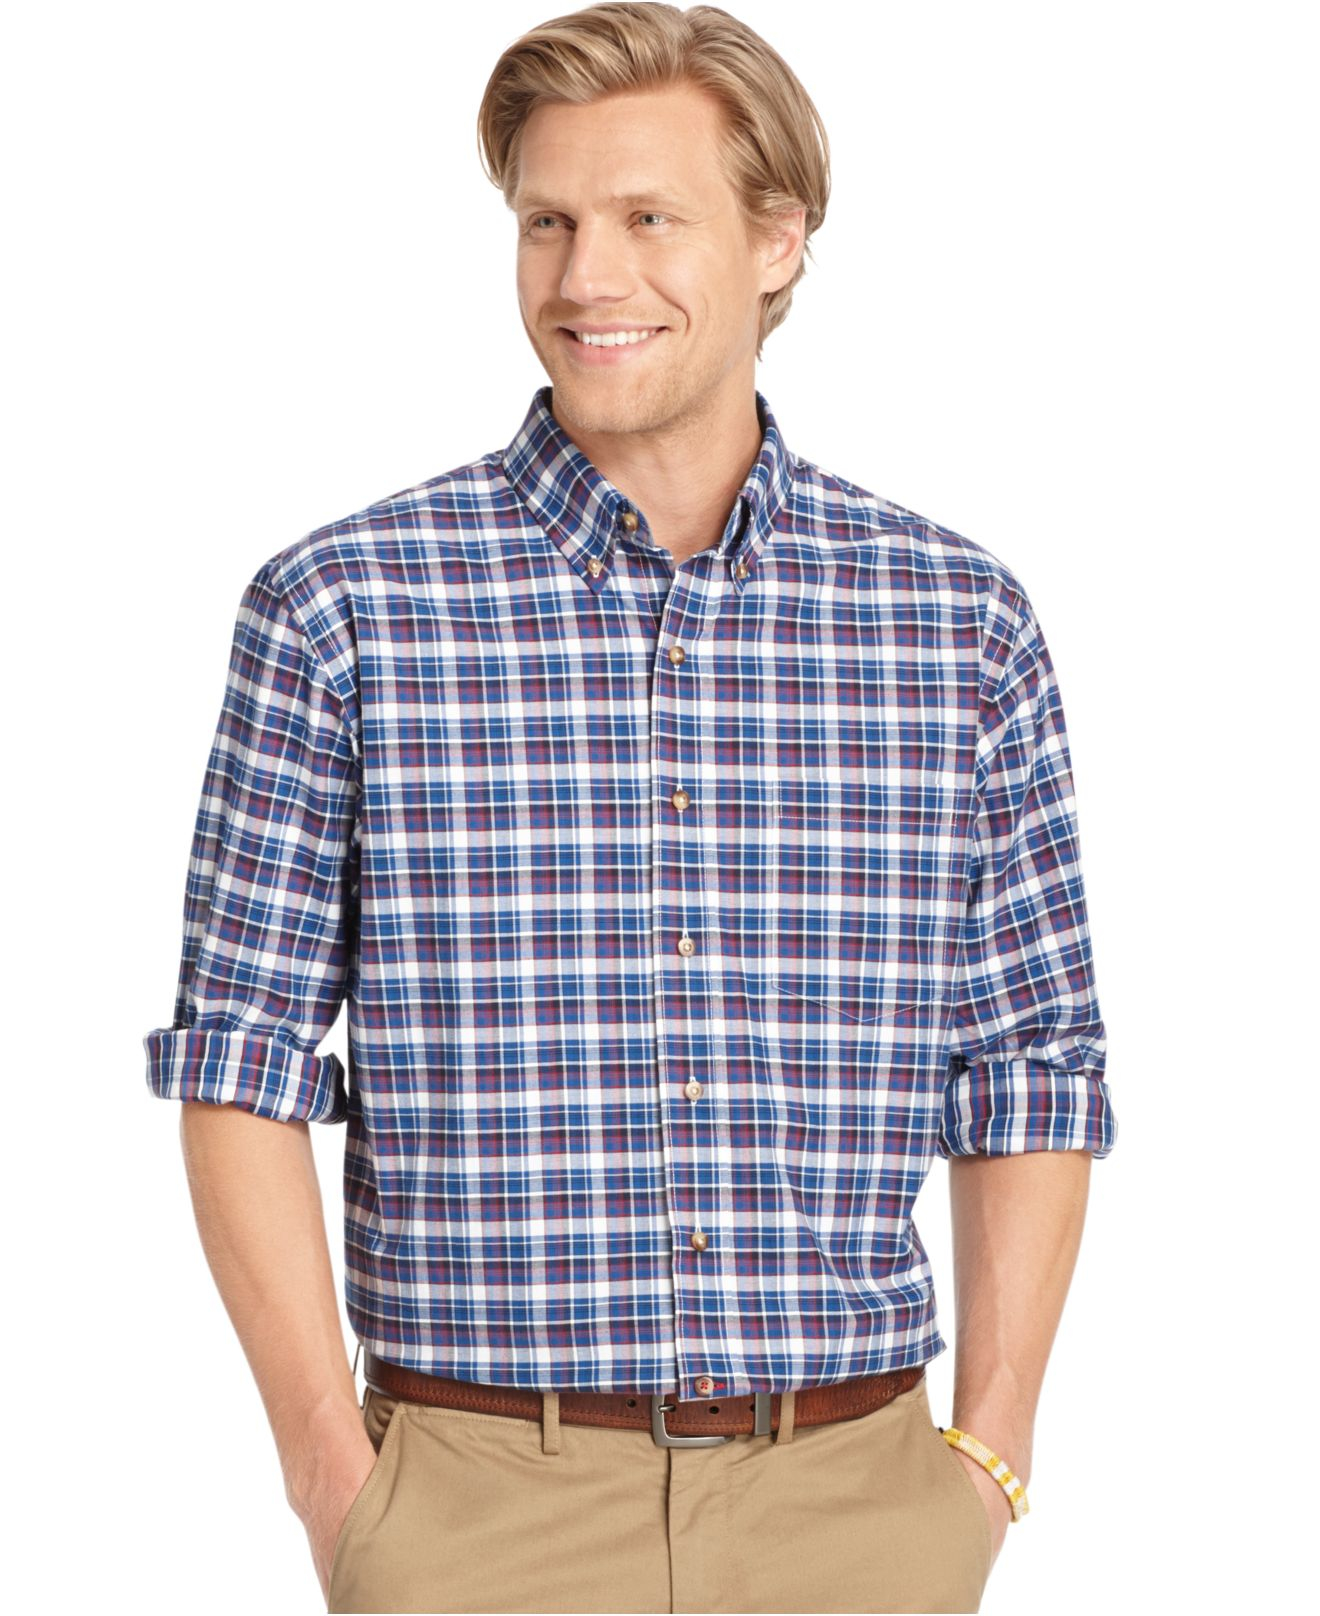 Lyst izod long sleeve plaid button down shirt in blue for Izod button down shirts